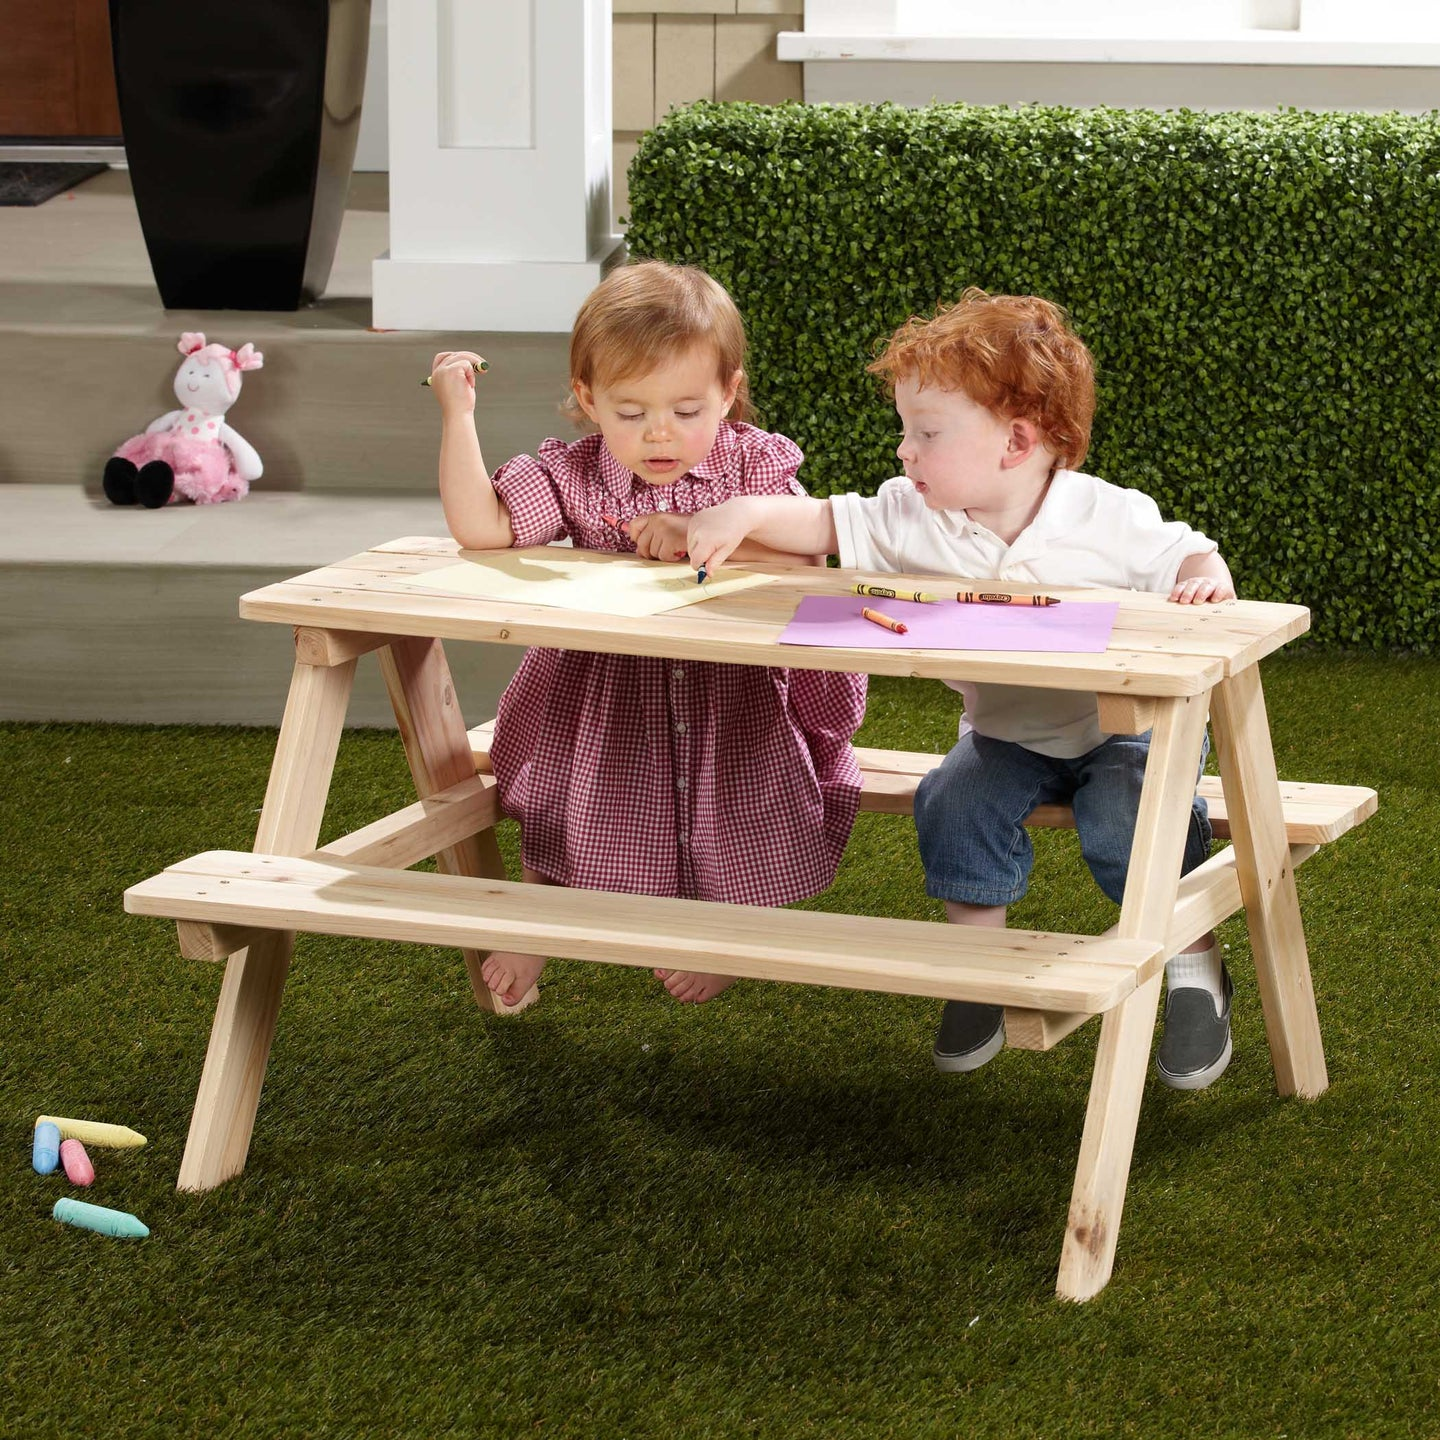 Wooden Cedar, Unfinished Outdoor and Indoor Kids Picnic Table, Table - Yardify.com